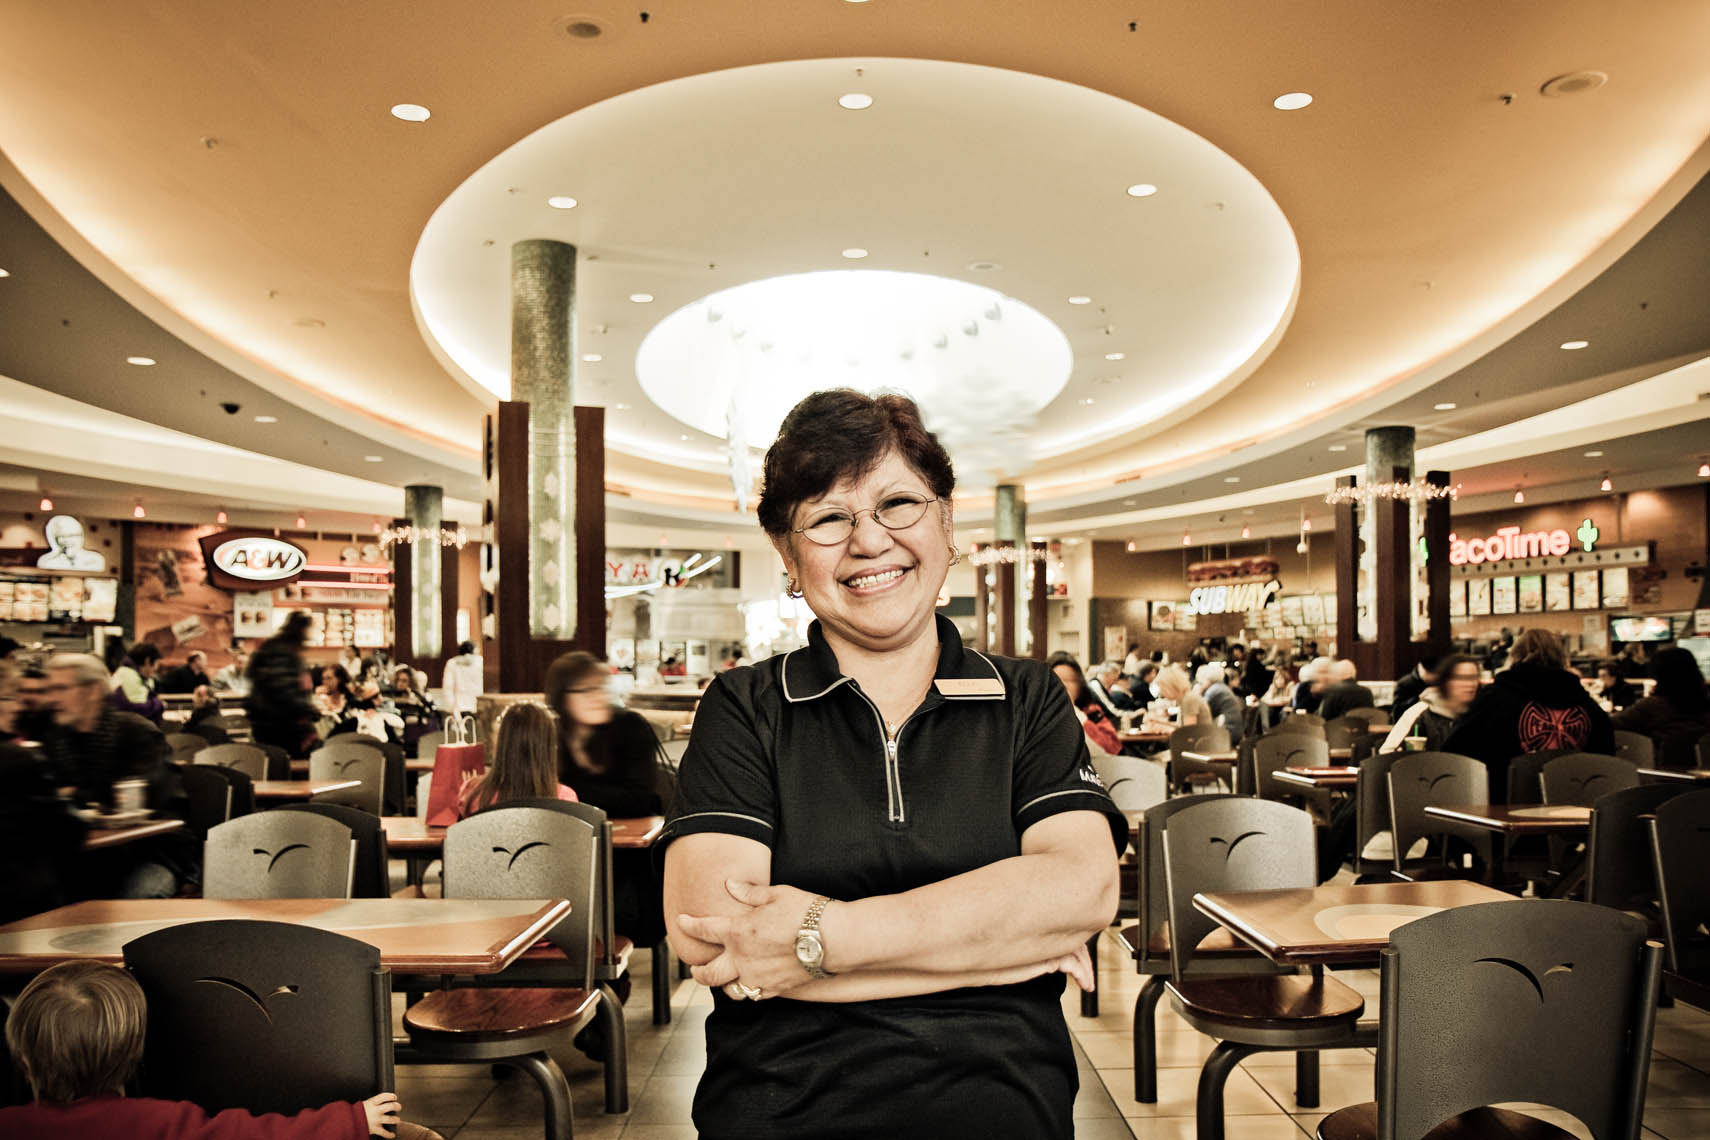 Shopping Mall Food Court Worker